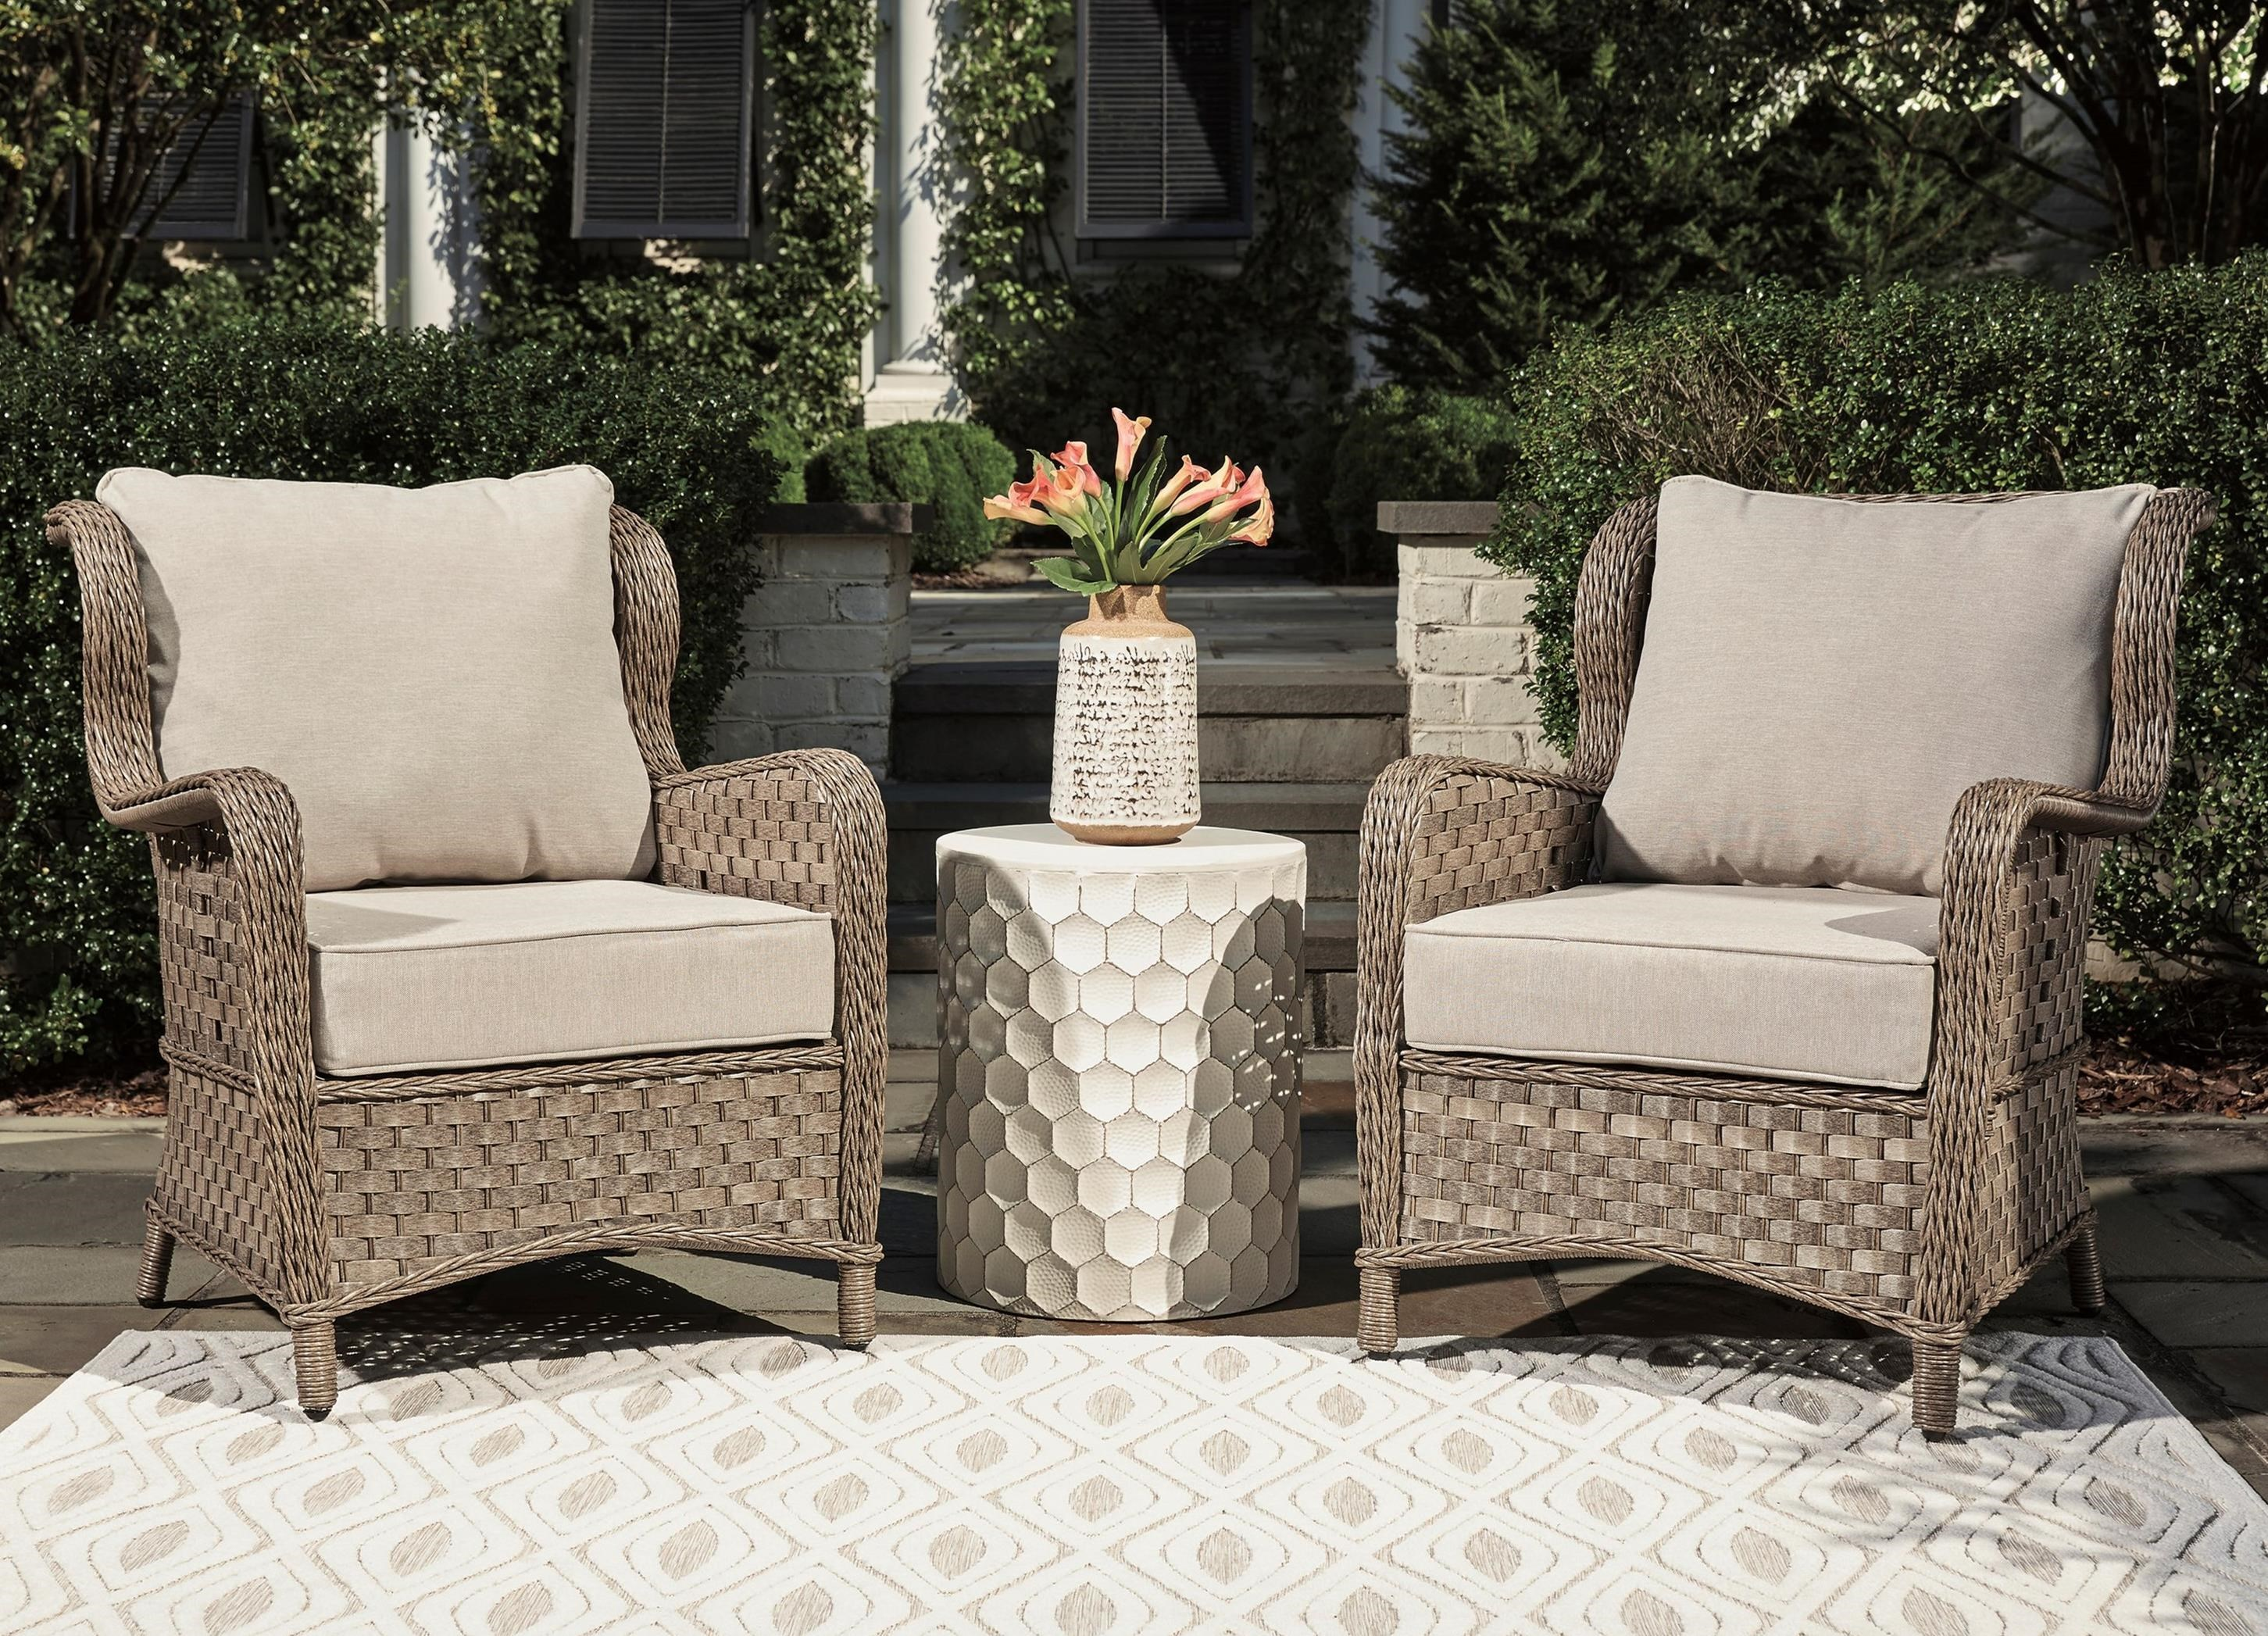 Clear Ridge Set of 2 Lounge Chairs w/ Cushion by Signature Design by Ashley at Standard Furniture